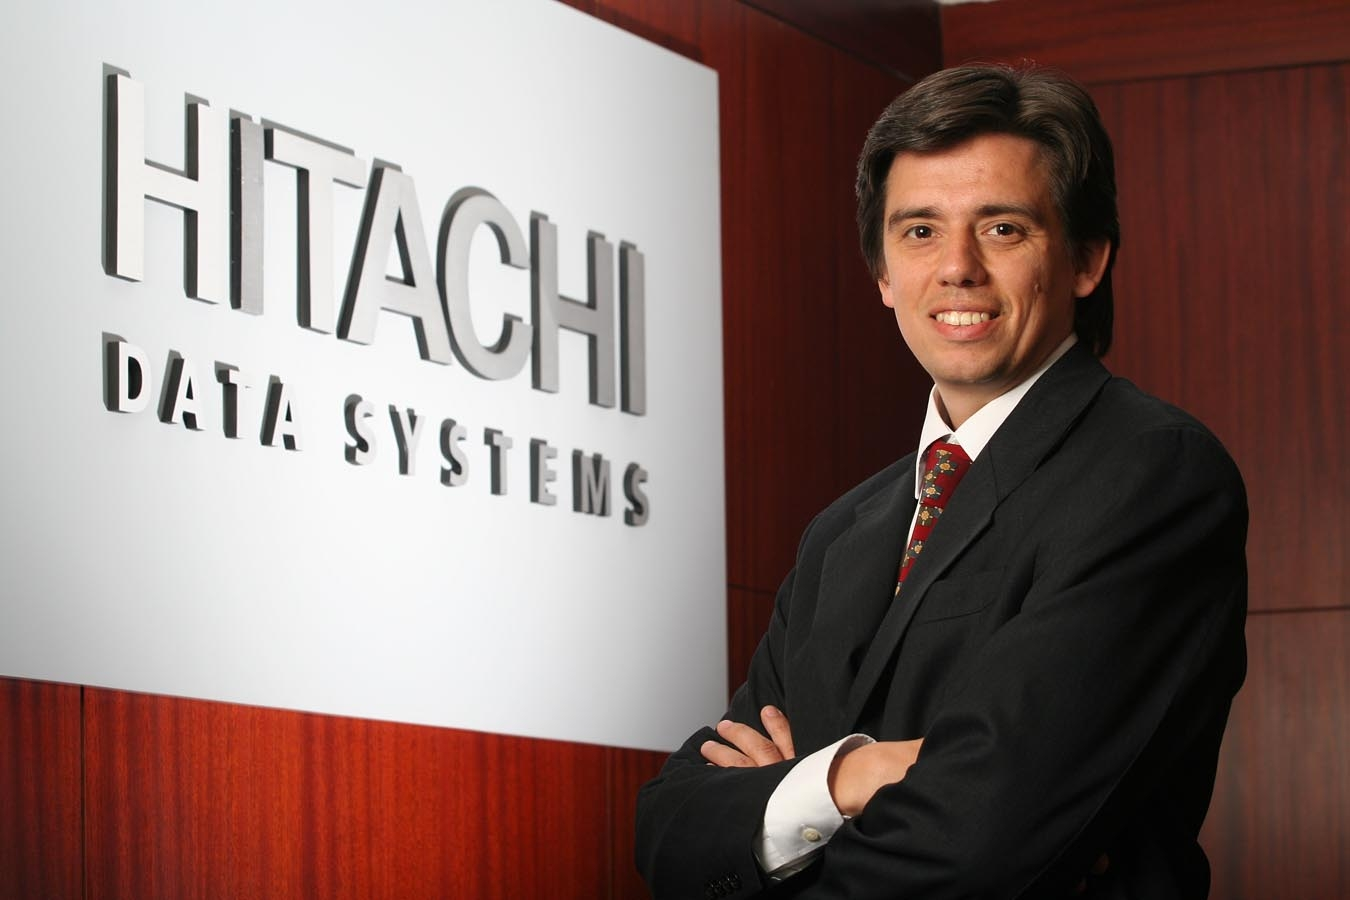 Alejo López Crozet, Director General de Hitachi Data Systems México.